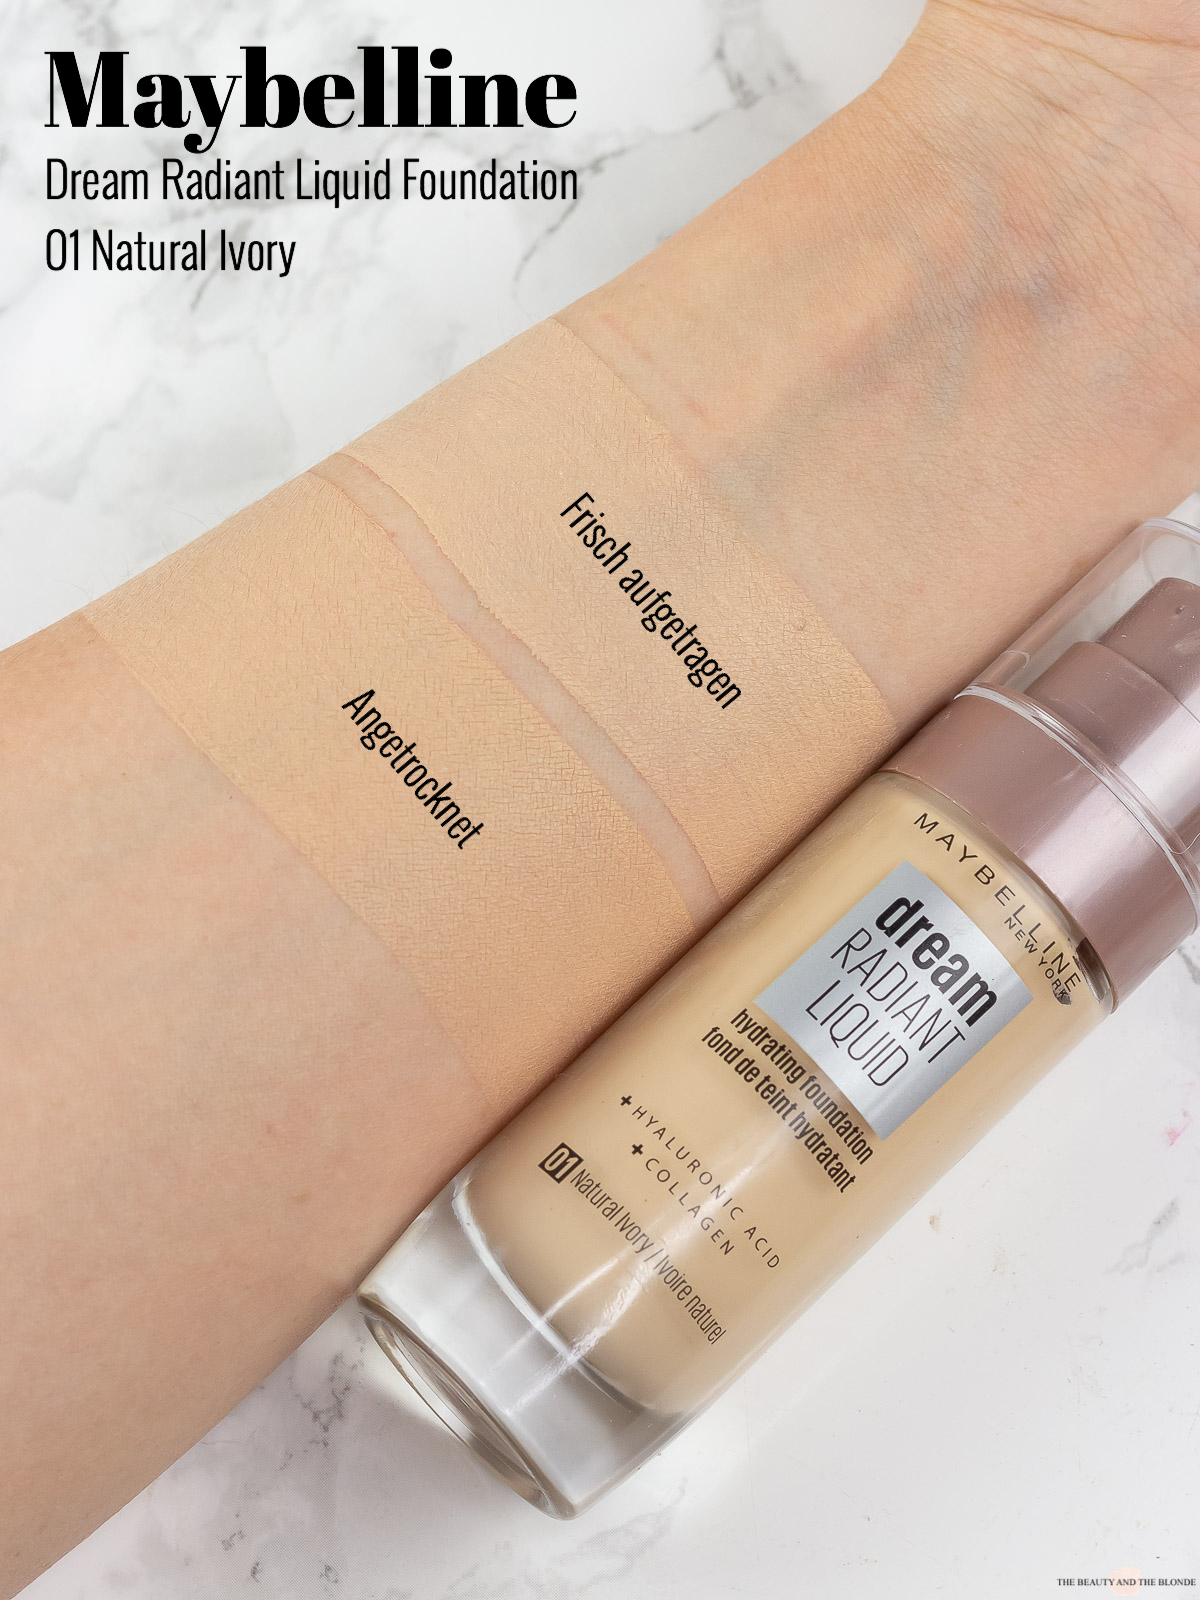 Maybelline Dream Radiant Liquid Foundation Swatches